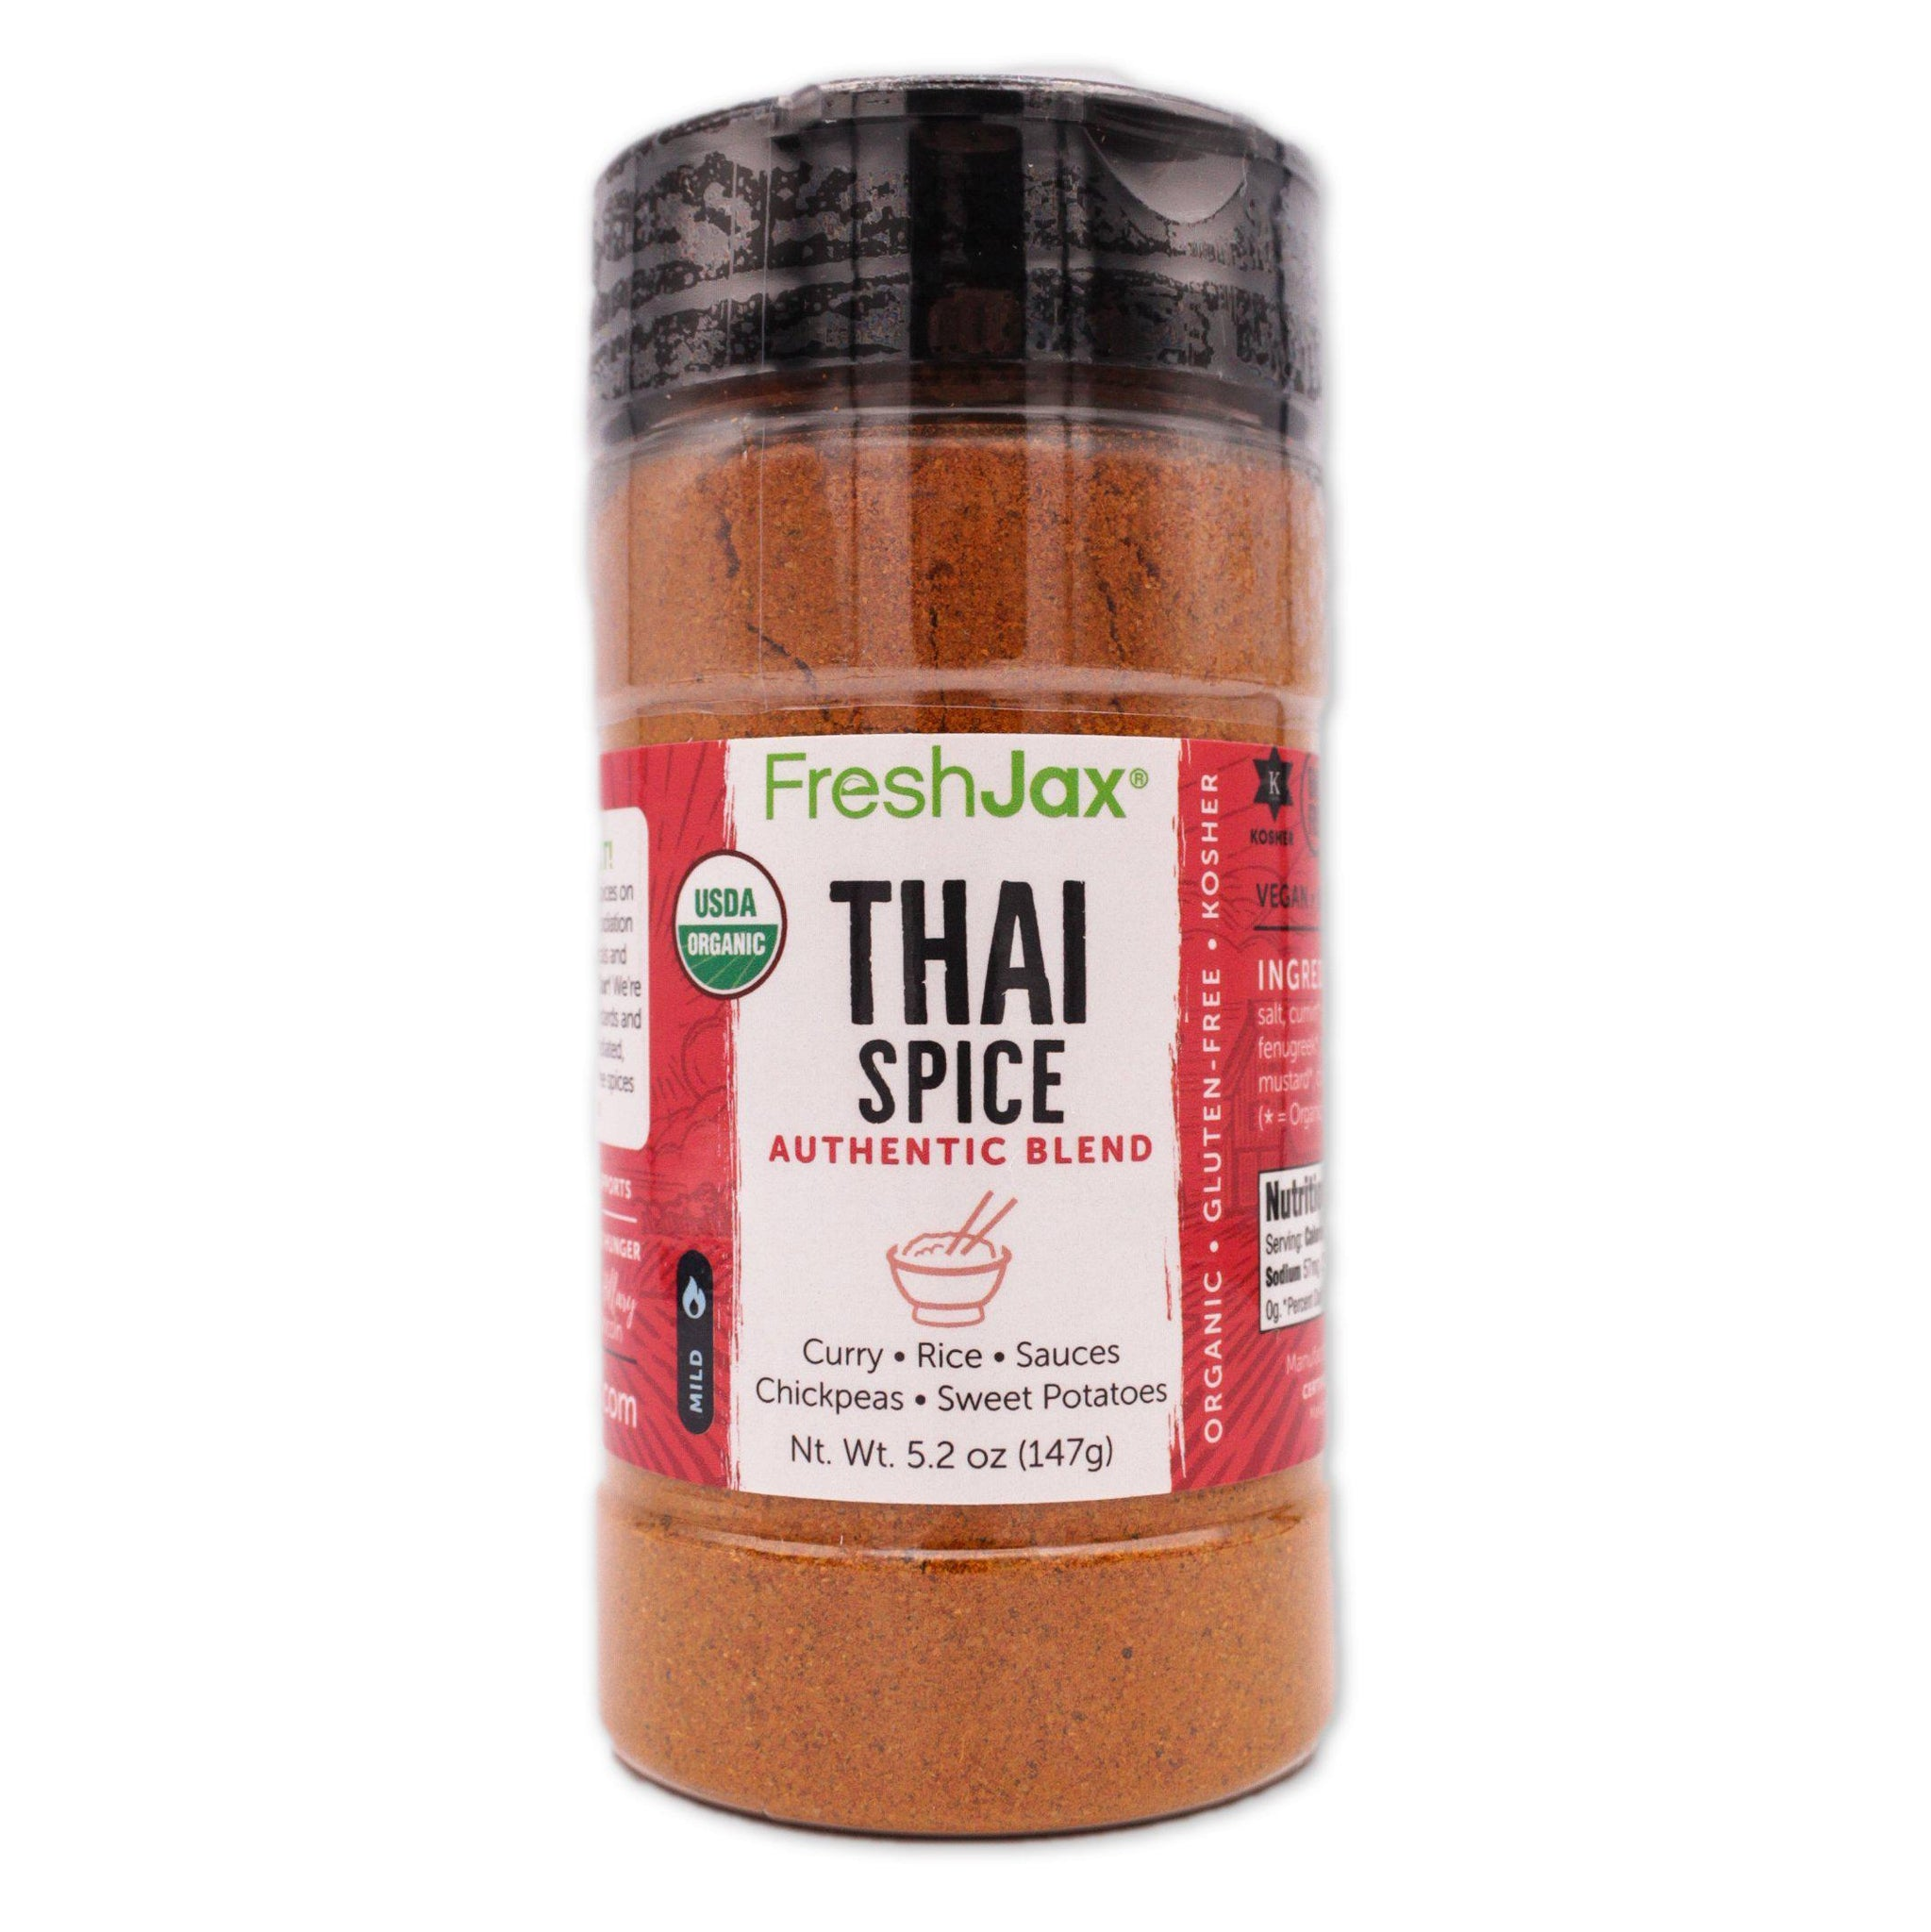 Thai Spice: Organic Authentic Blend